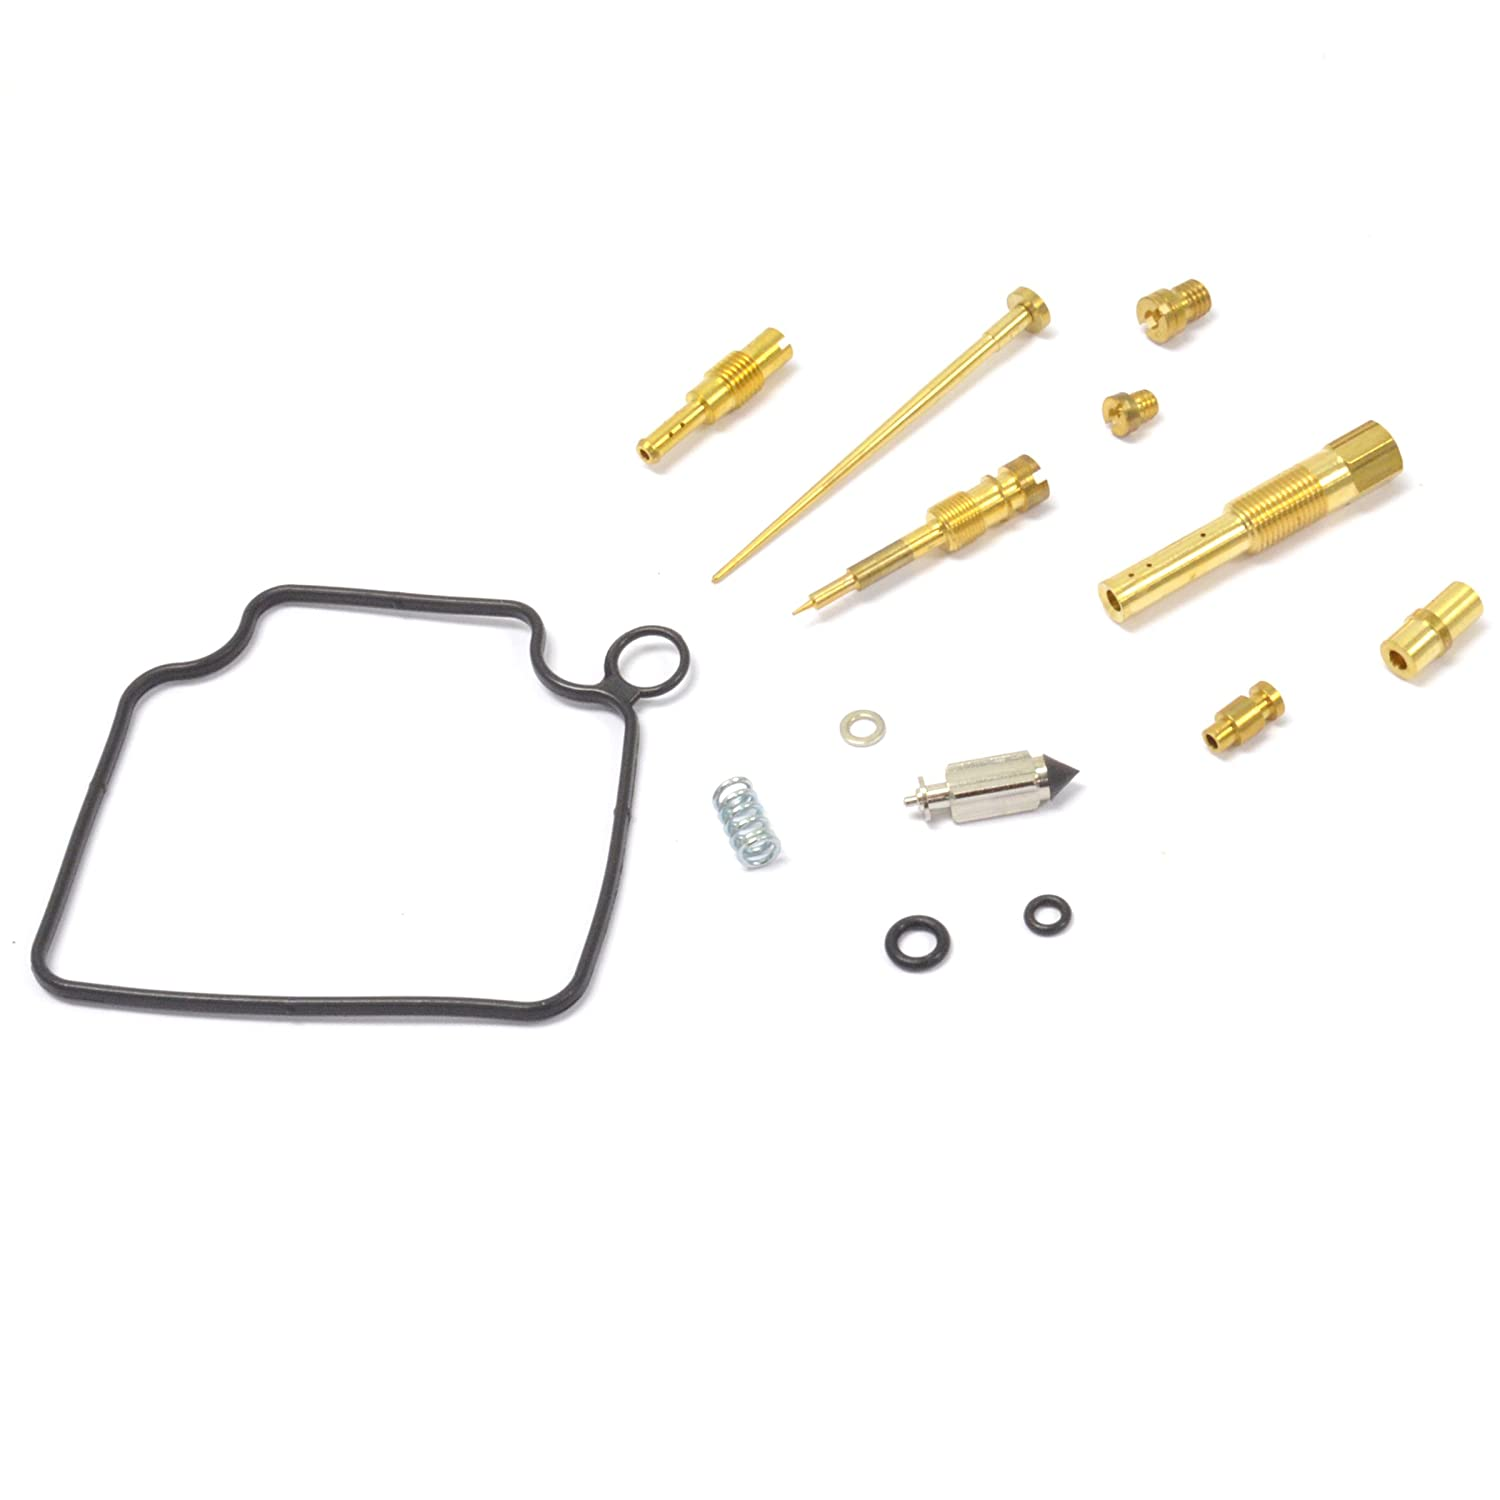 Honda TRX650 Rincon 650 03-05 Carburetor Carb Repair Rebuild Jet Seal Kit by Niche Cycle Supply